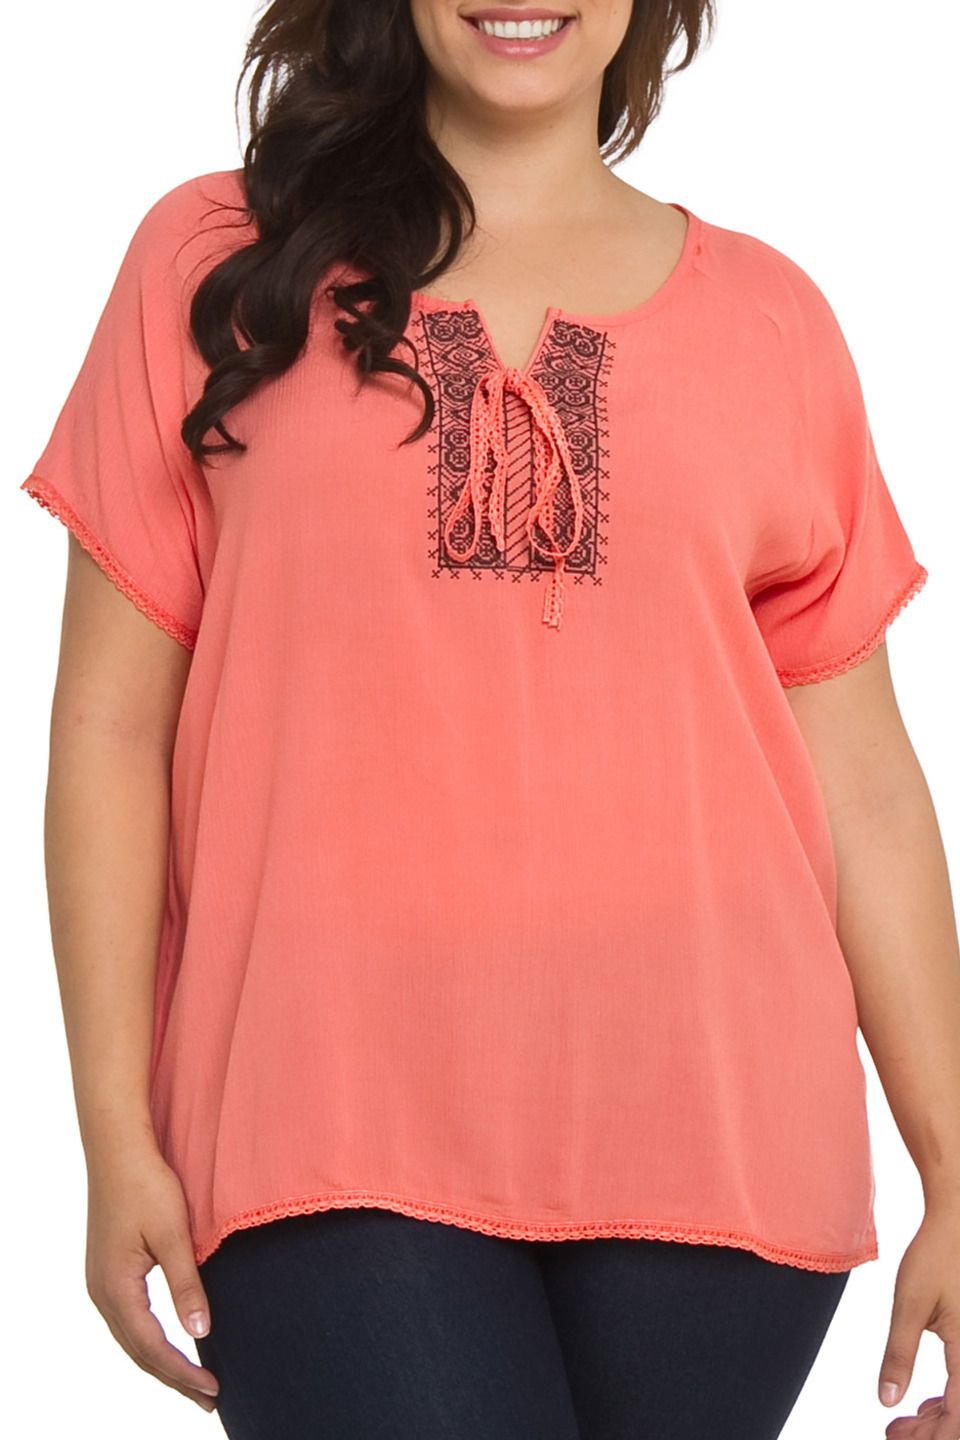 C.O.C Embroidered Peasant Top in Coral - Beyond the Rack